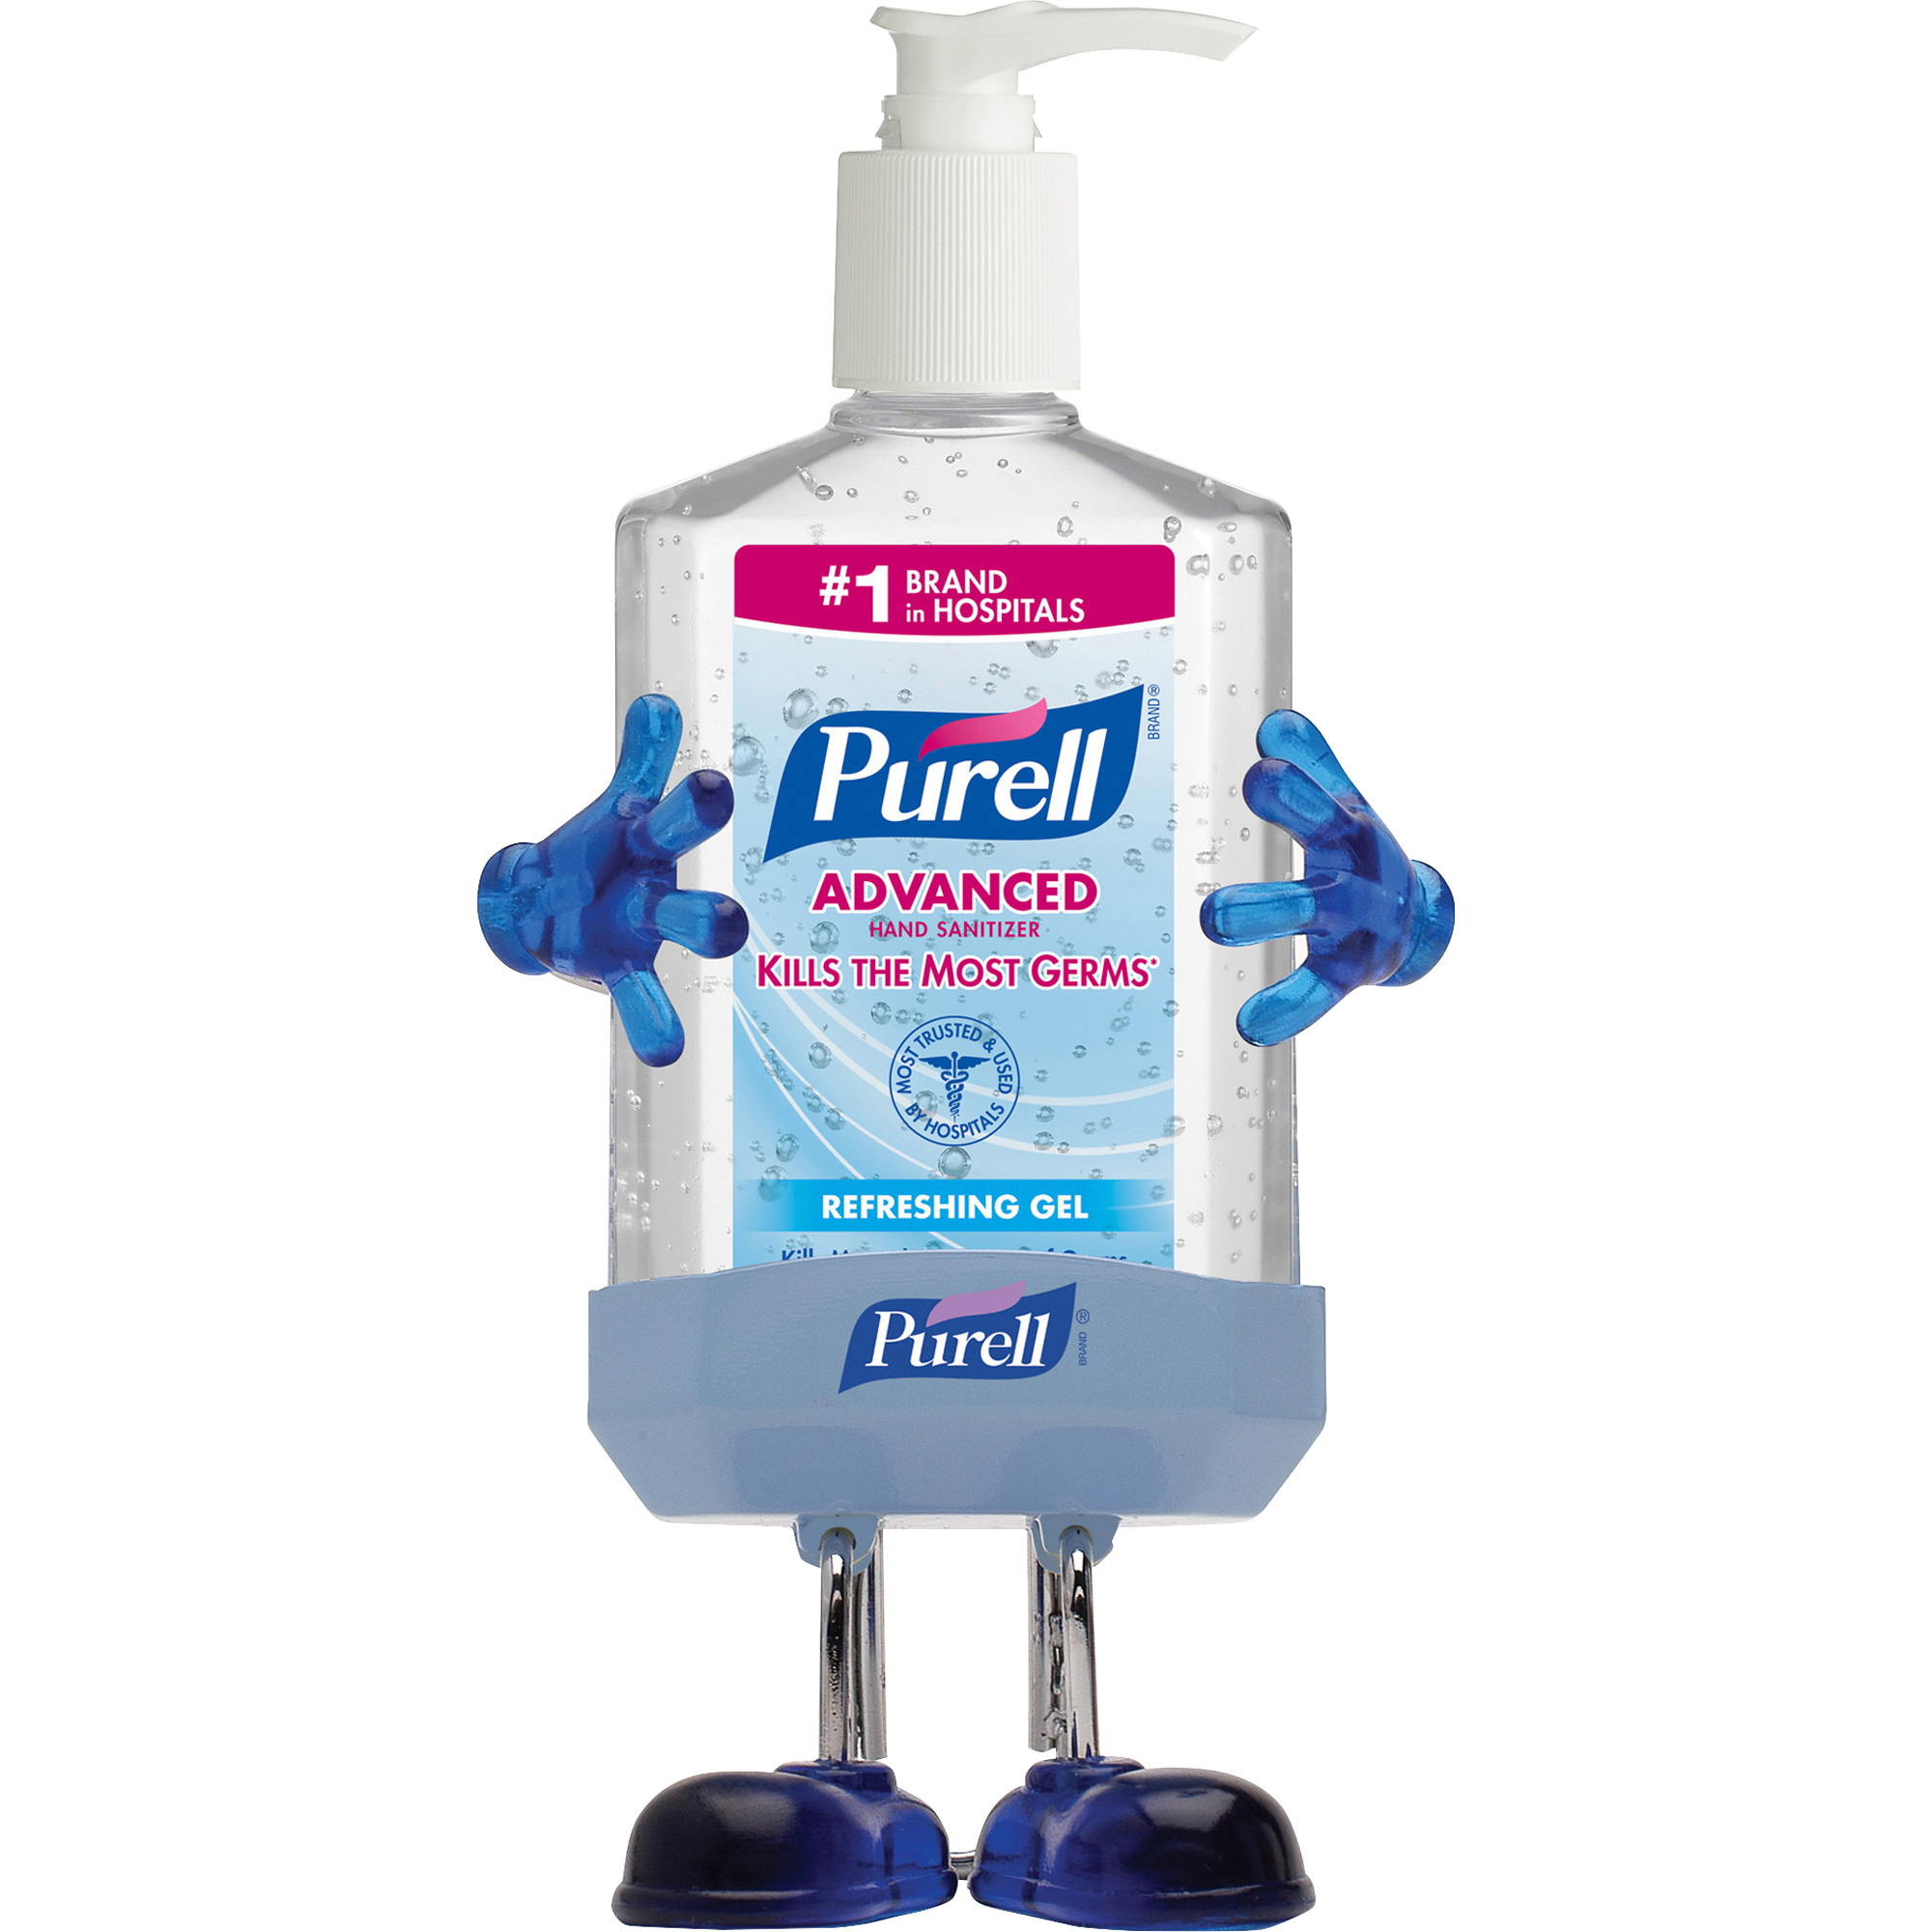 where to buy purell in lagos